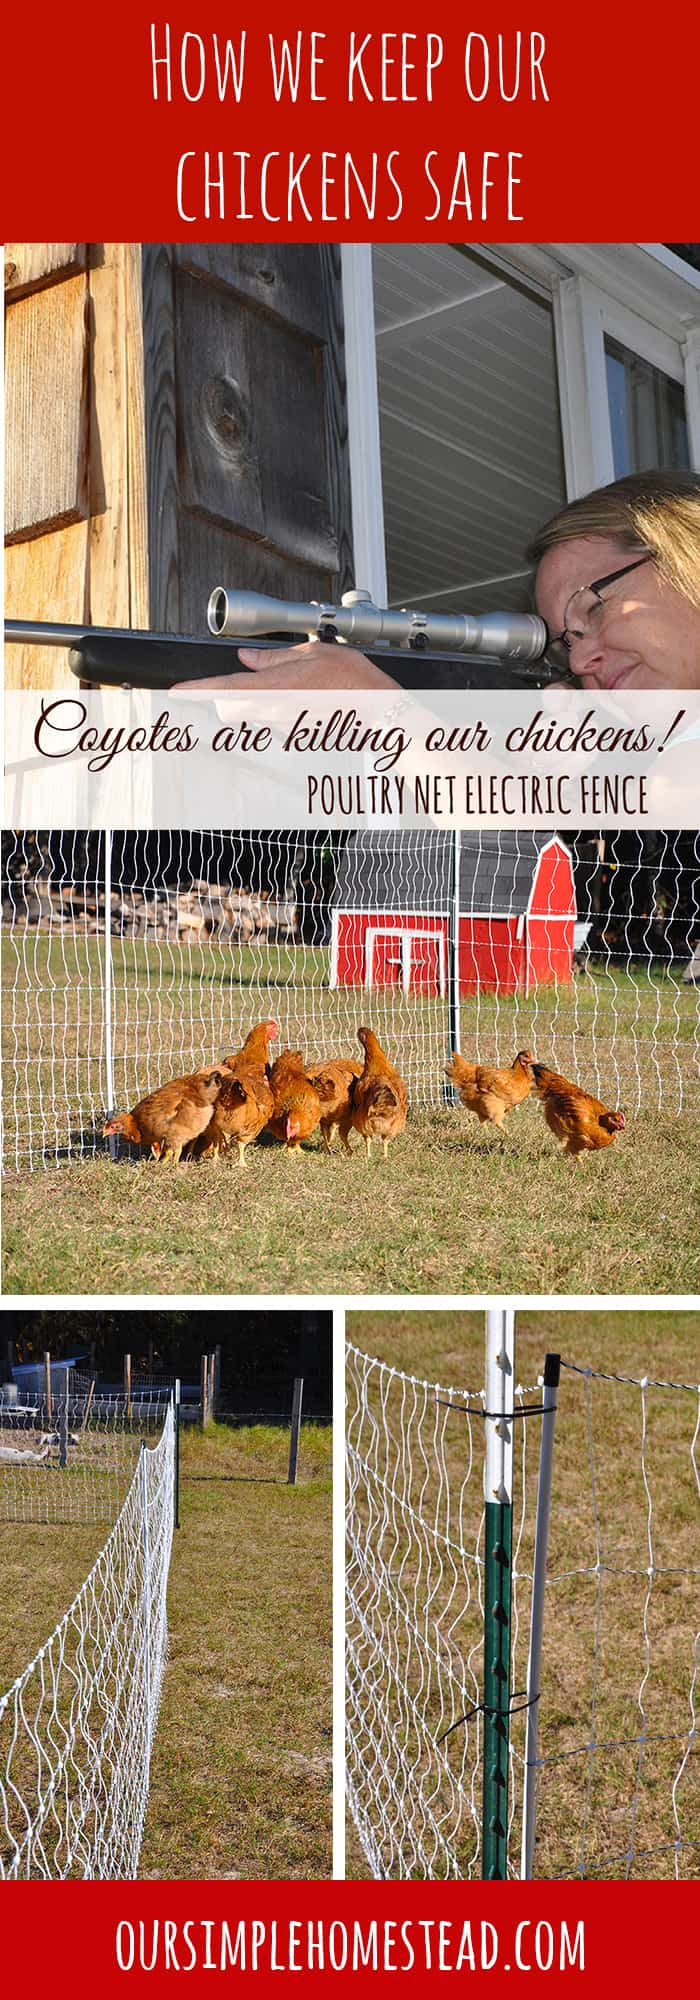 Electric Chicken Fence saved our chickens!